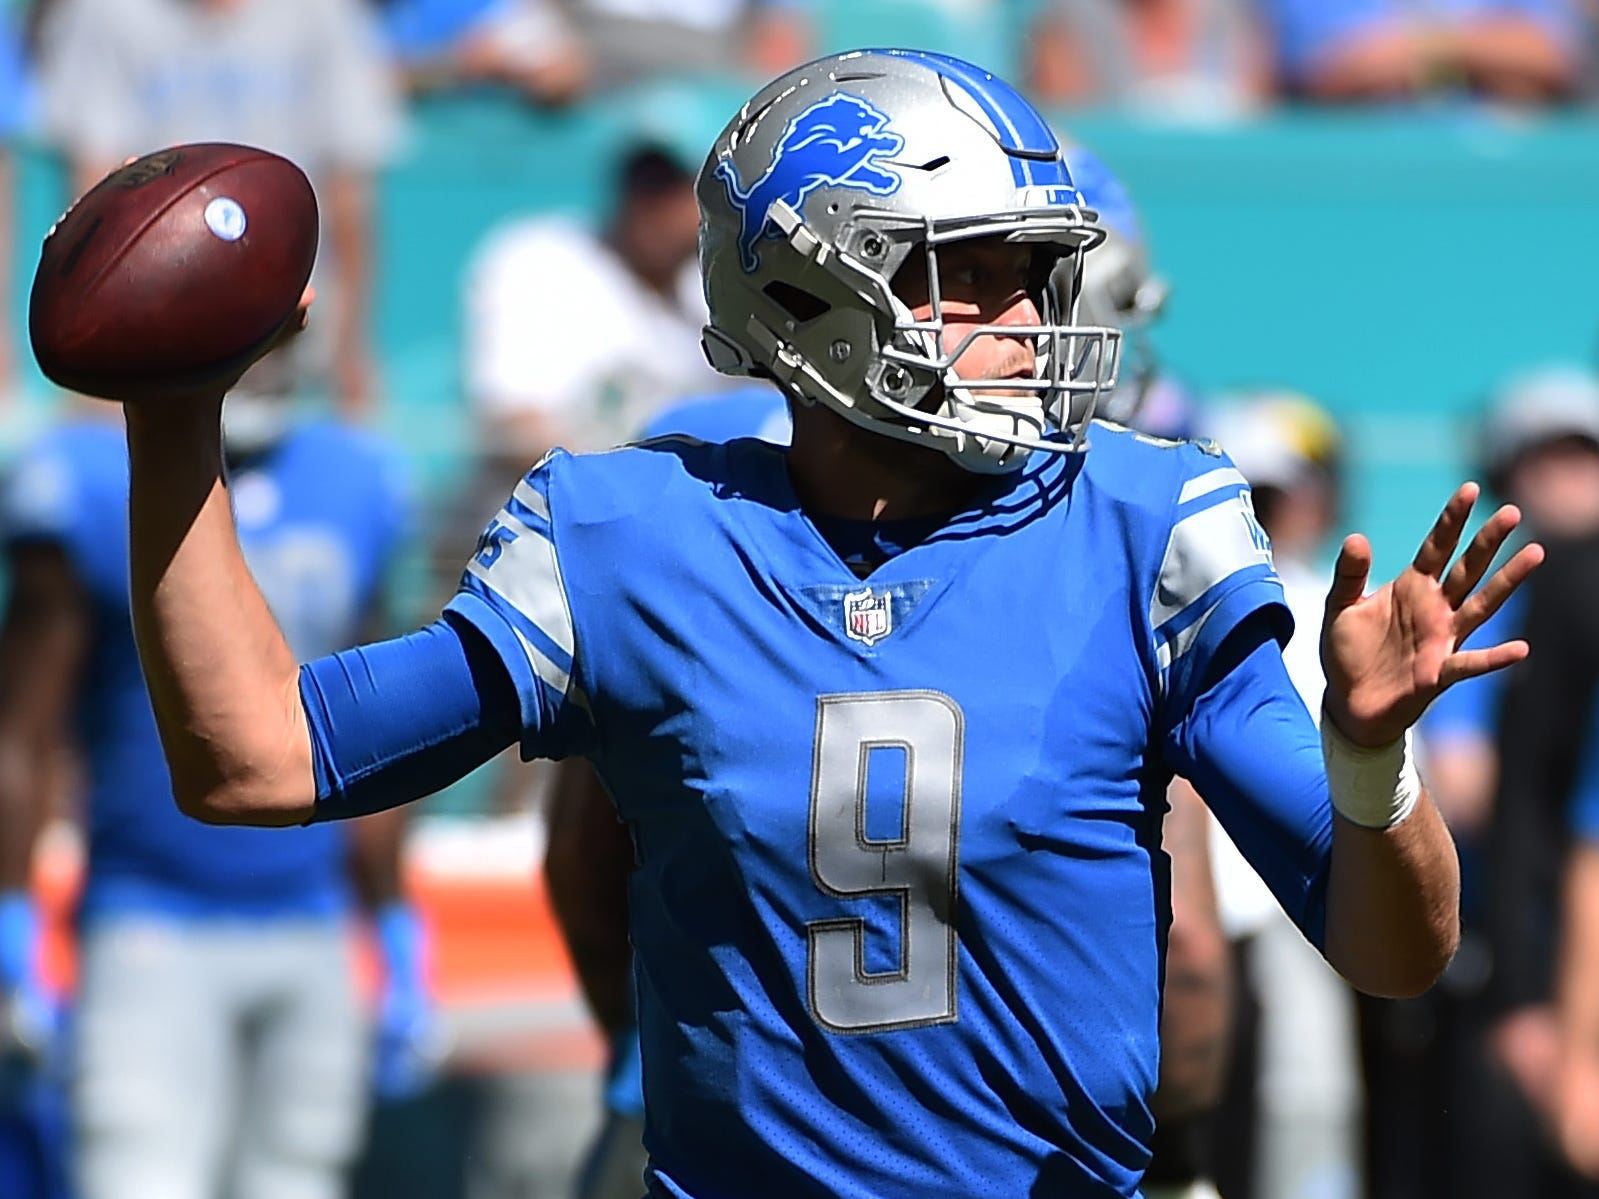 19. Lions (23): Matthew Stafford threw 22 passes Sunday, second fewest of his career in a game he completed. He threw 21 in the other, also a Detroit win.